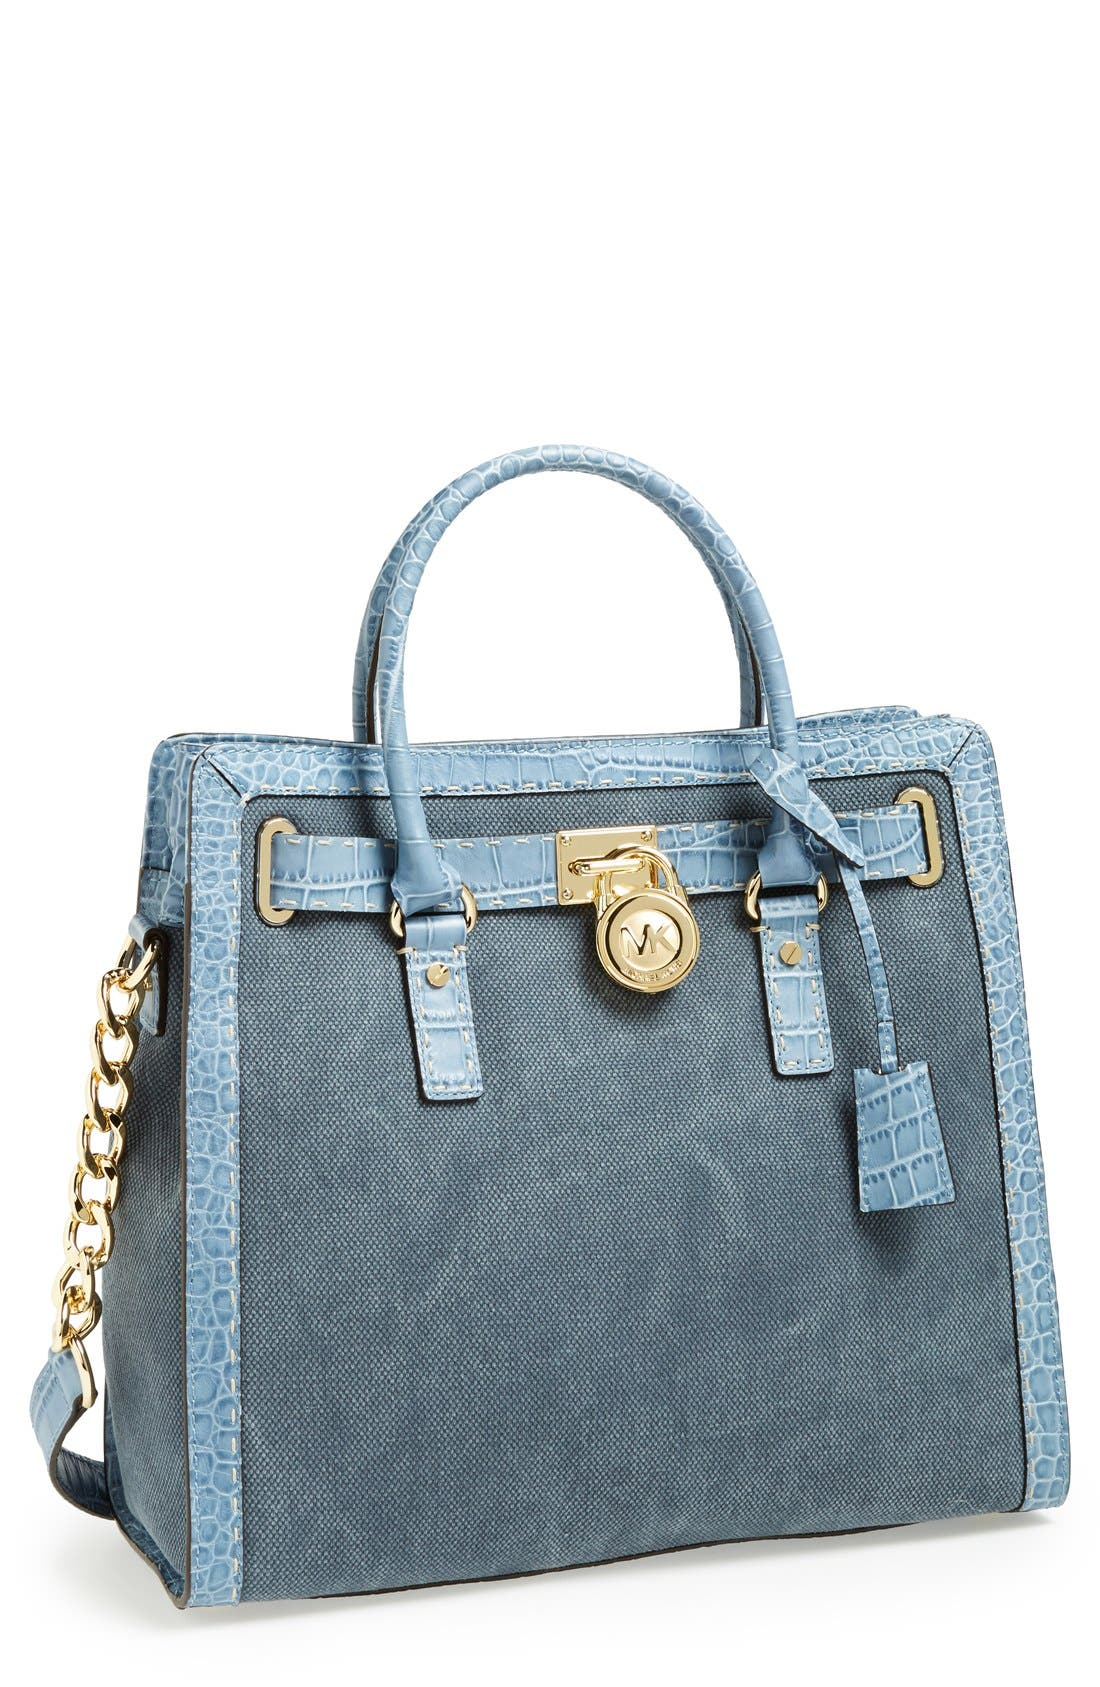 Main Image - MICHAEL Michael Kors 'Large' North/South Tote